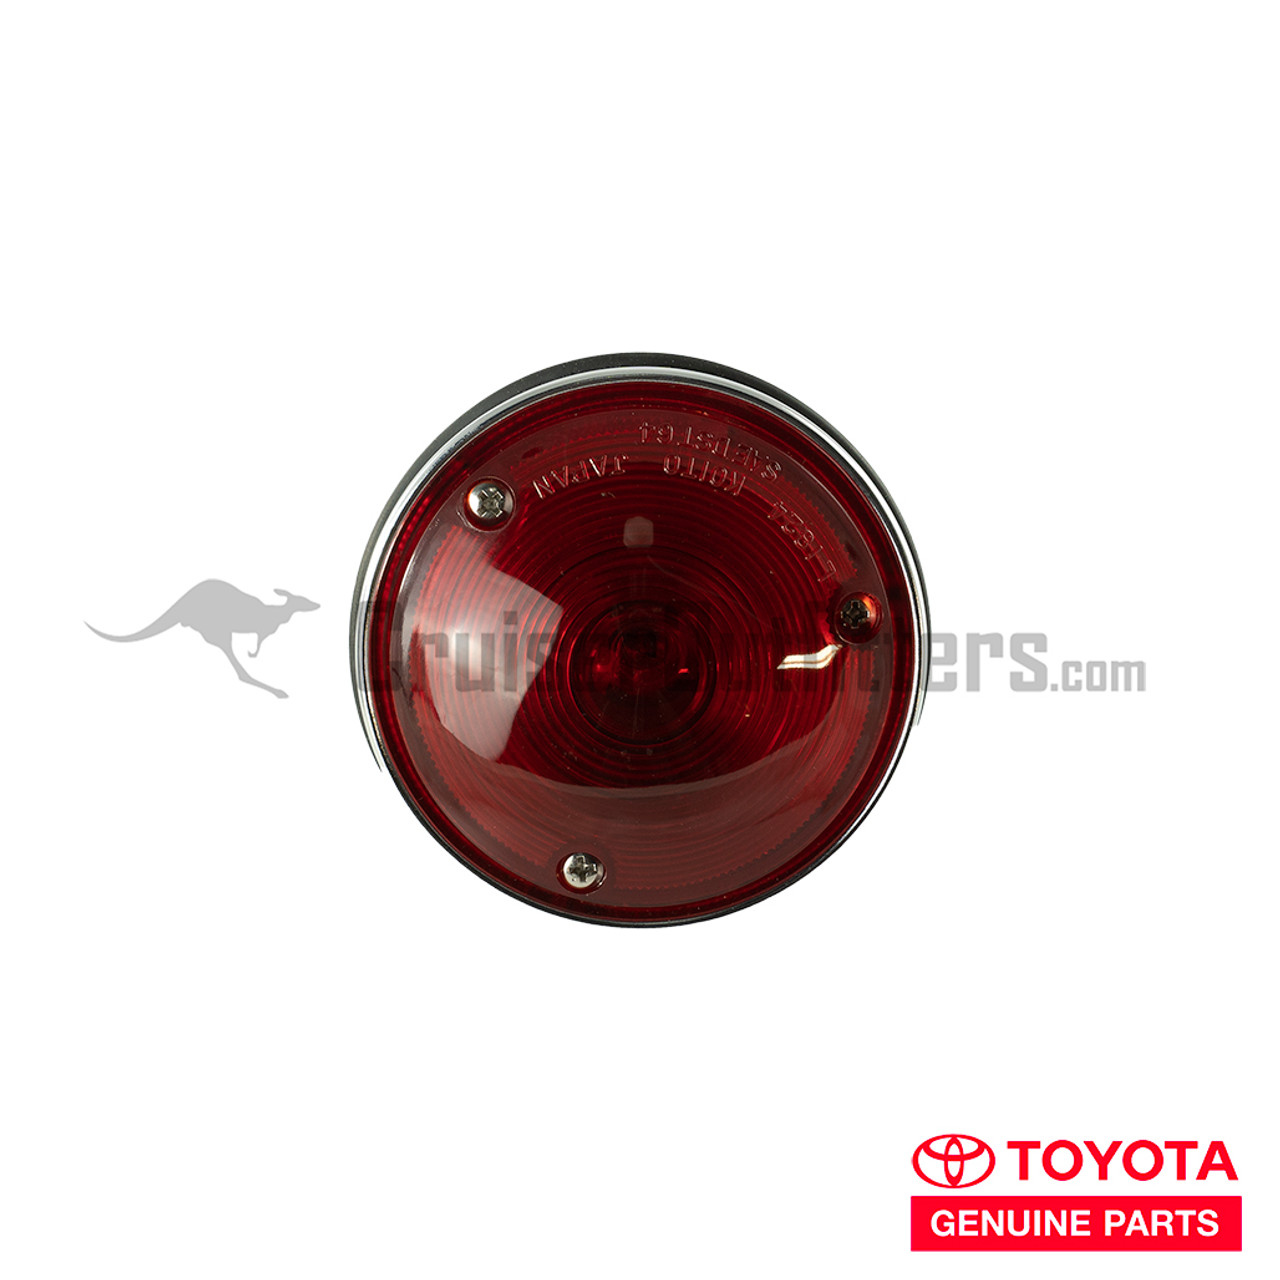 Round Tail Light (Small Diameter) - OEM Toyota - Fits 4x Series (TL60011)